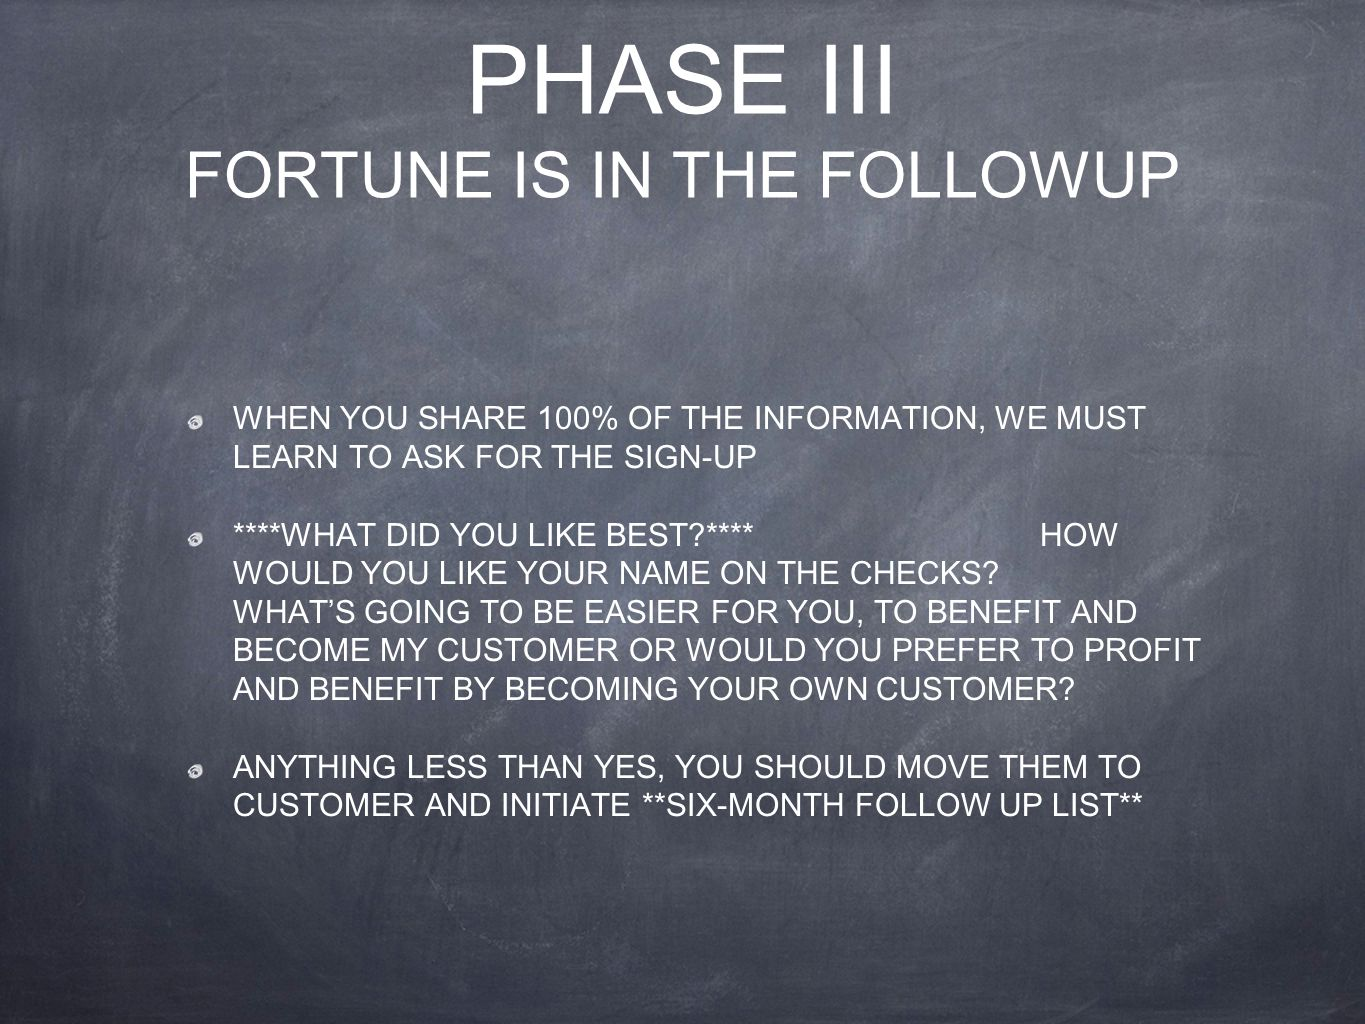 PHASE III FORTUNE IS IN THE FOLLOWUP